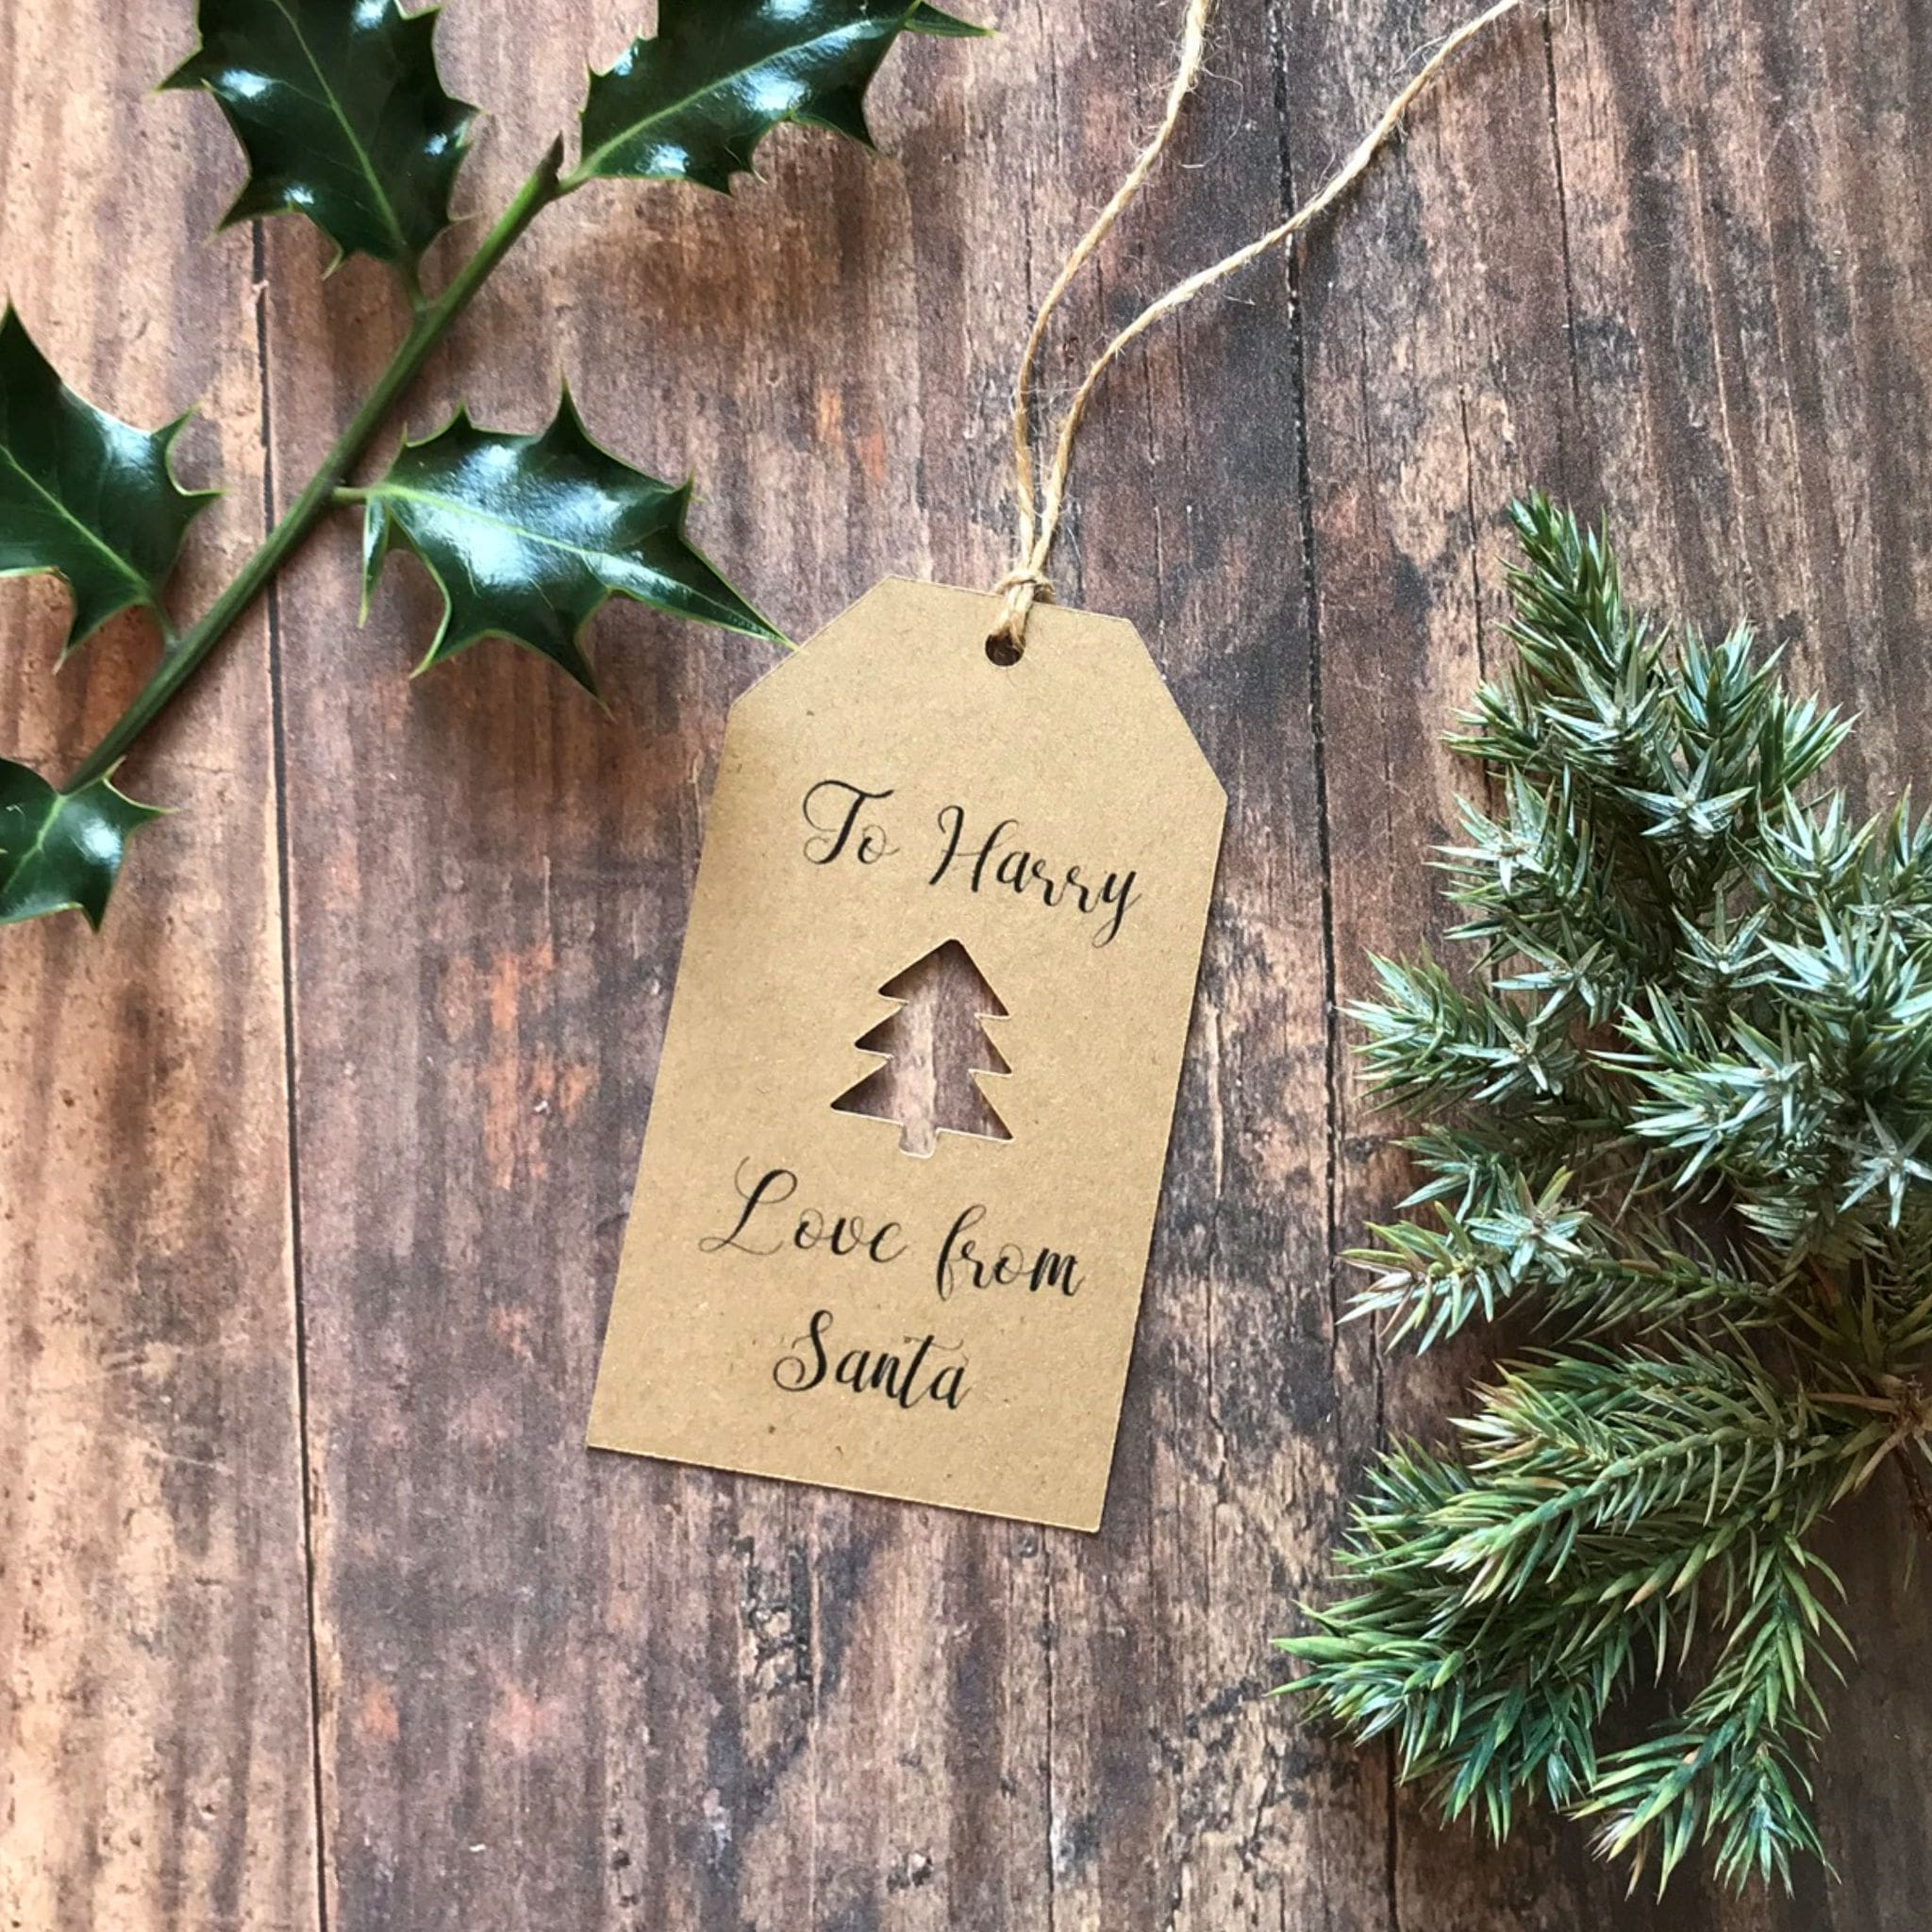 Christmas Tree Cut Out From Santa Gift Tag